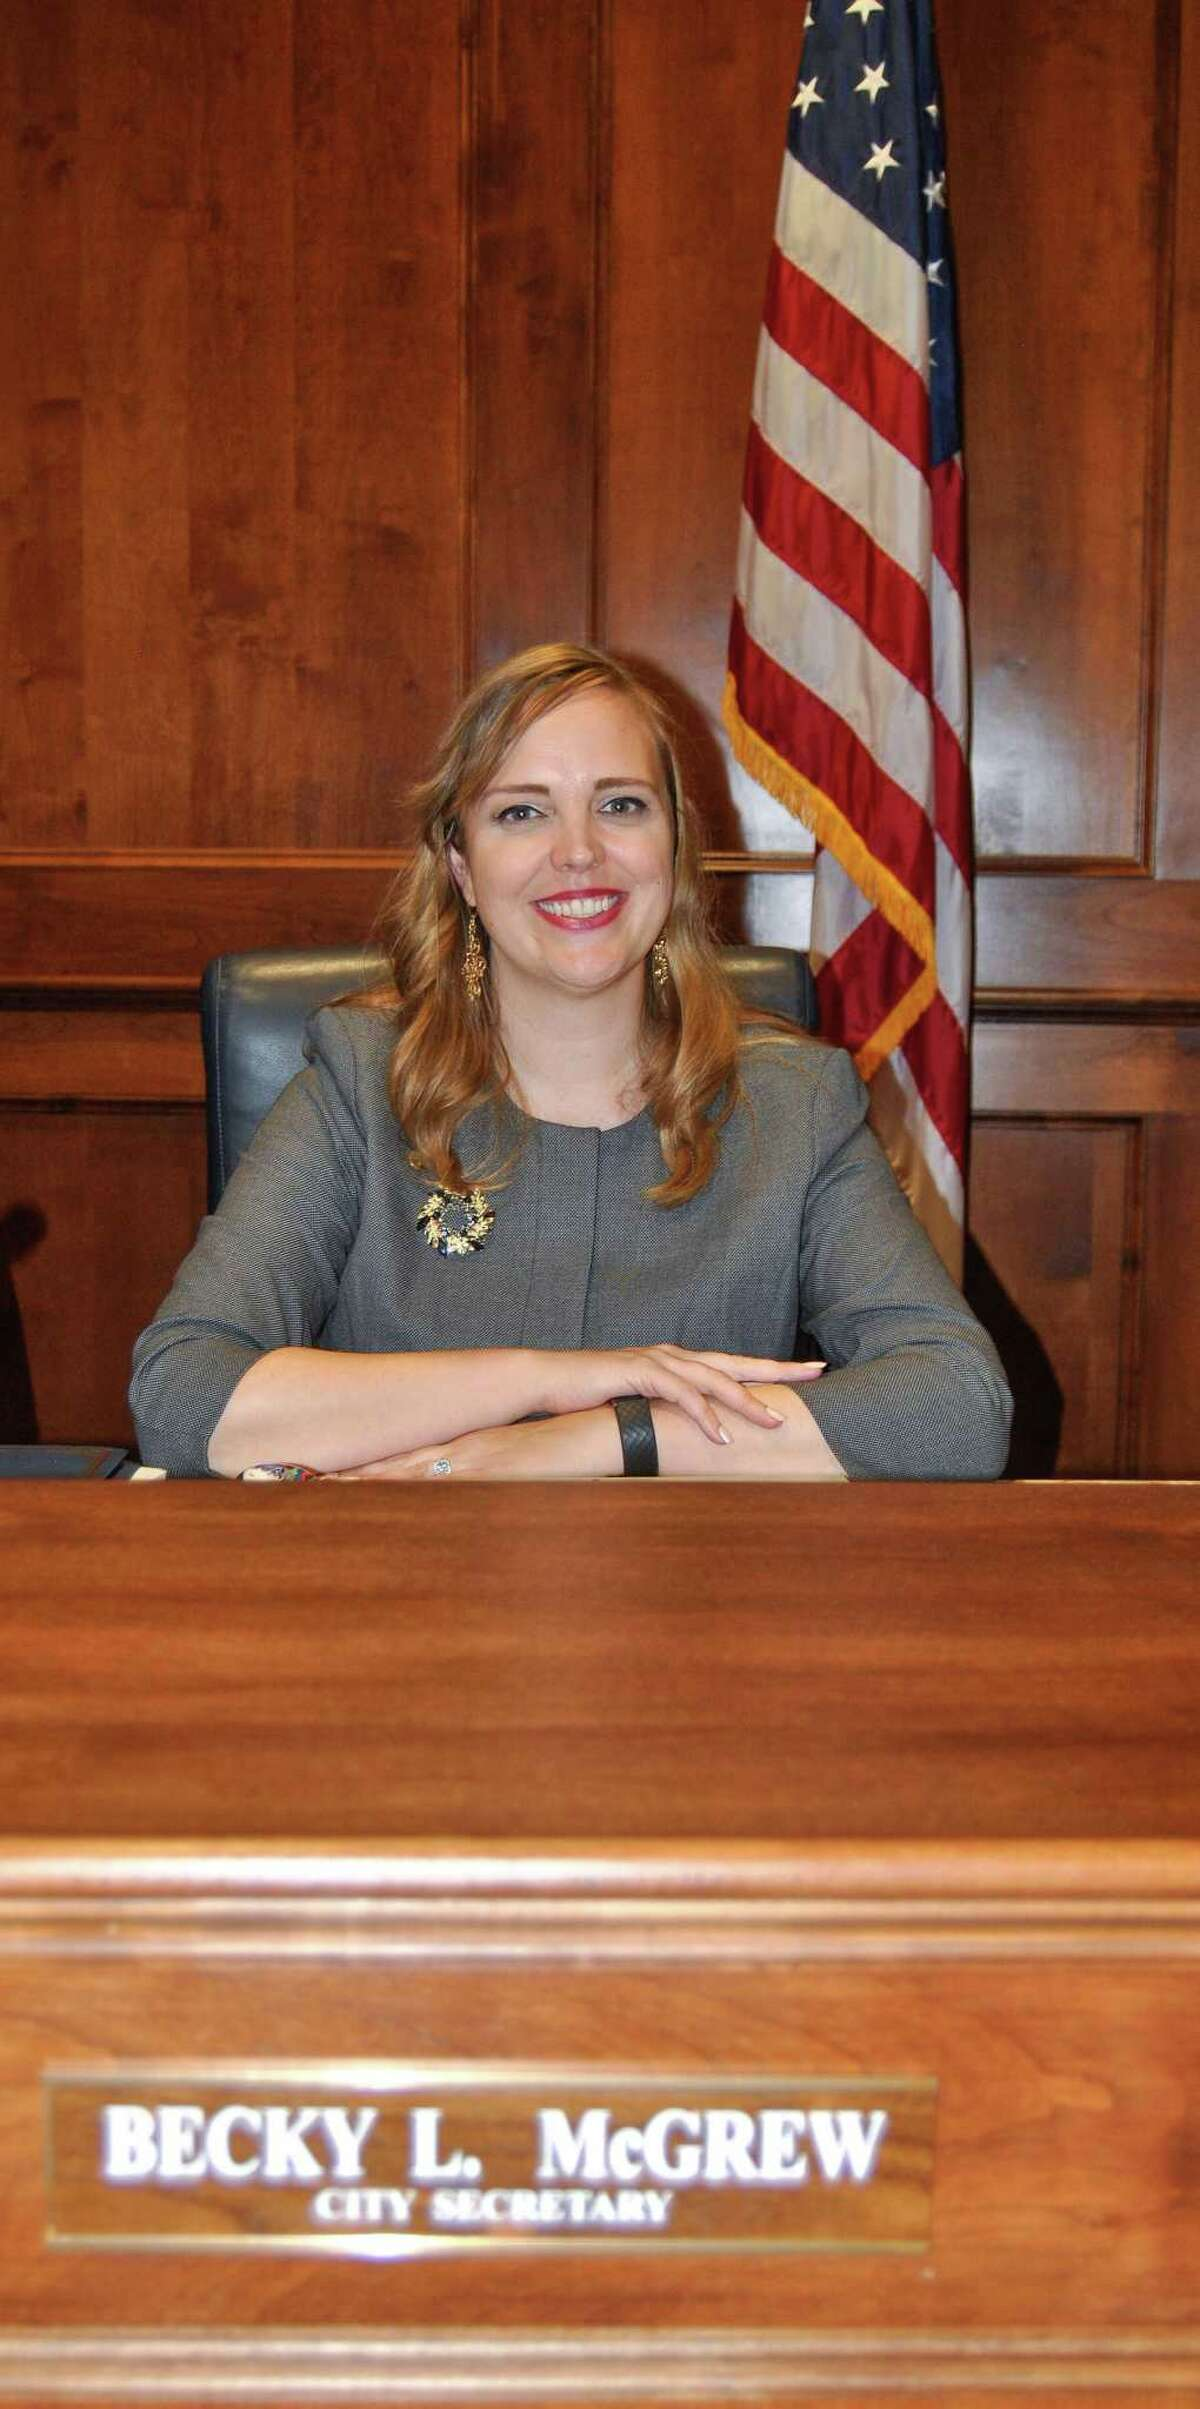 Becky L. McGrew was appointed Katy city secretary on Oct. 28. She had served as assistant city secretary five years before her appointment.